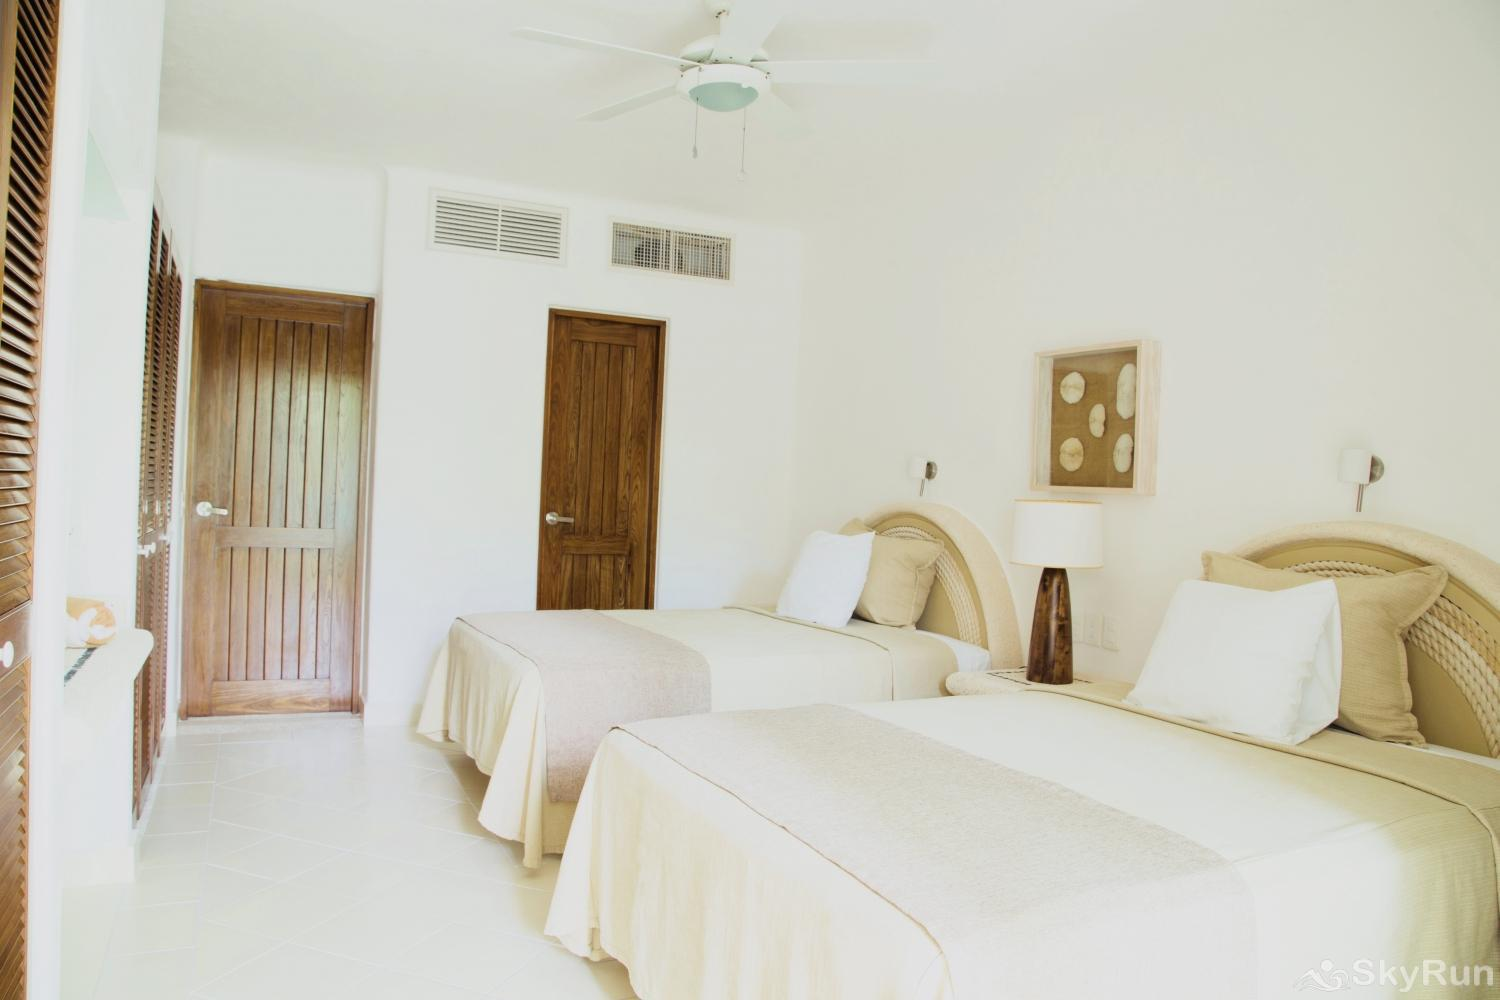 Ocean Side Beachfront Condo Villa 318B 2nd Bedroom 2 Queen Beds